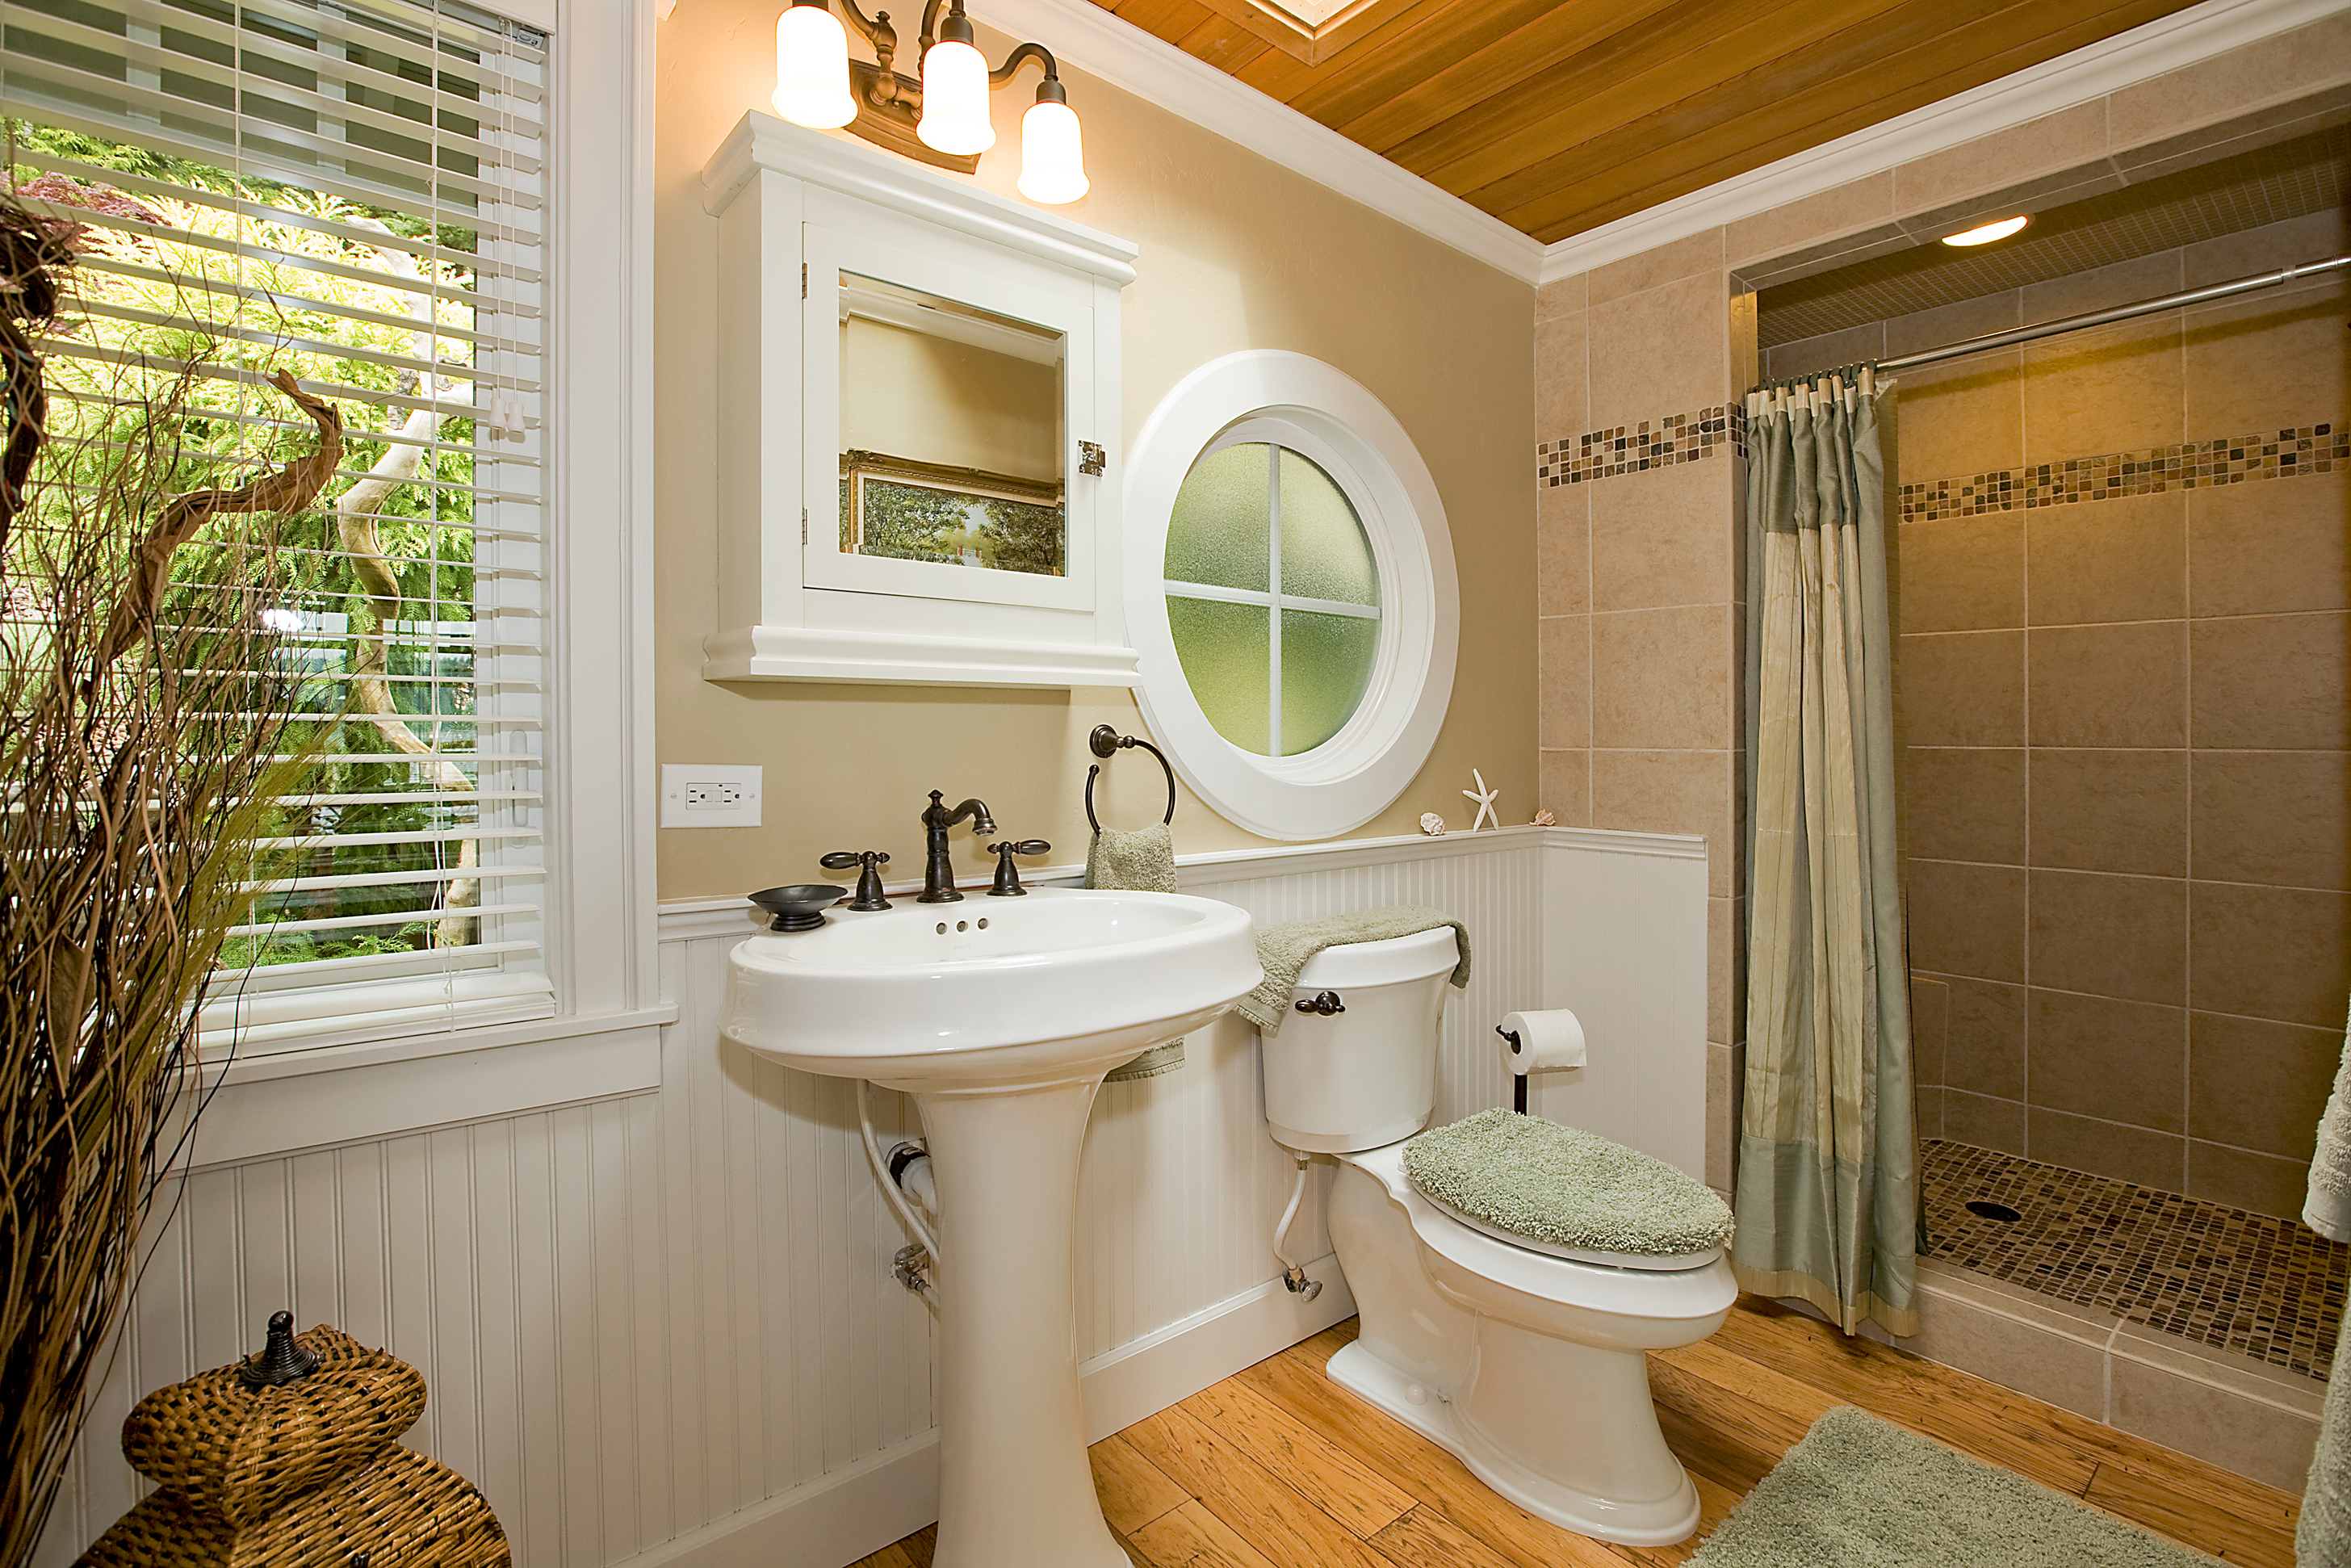 Charmant Four Things To Consider Before A Bathroom Remodeling Project